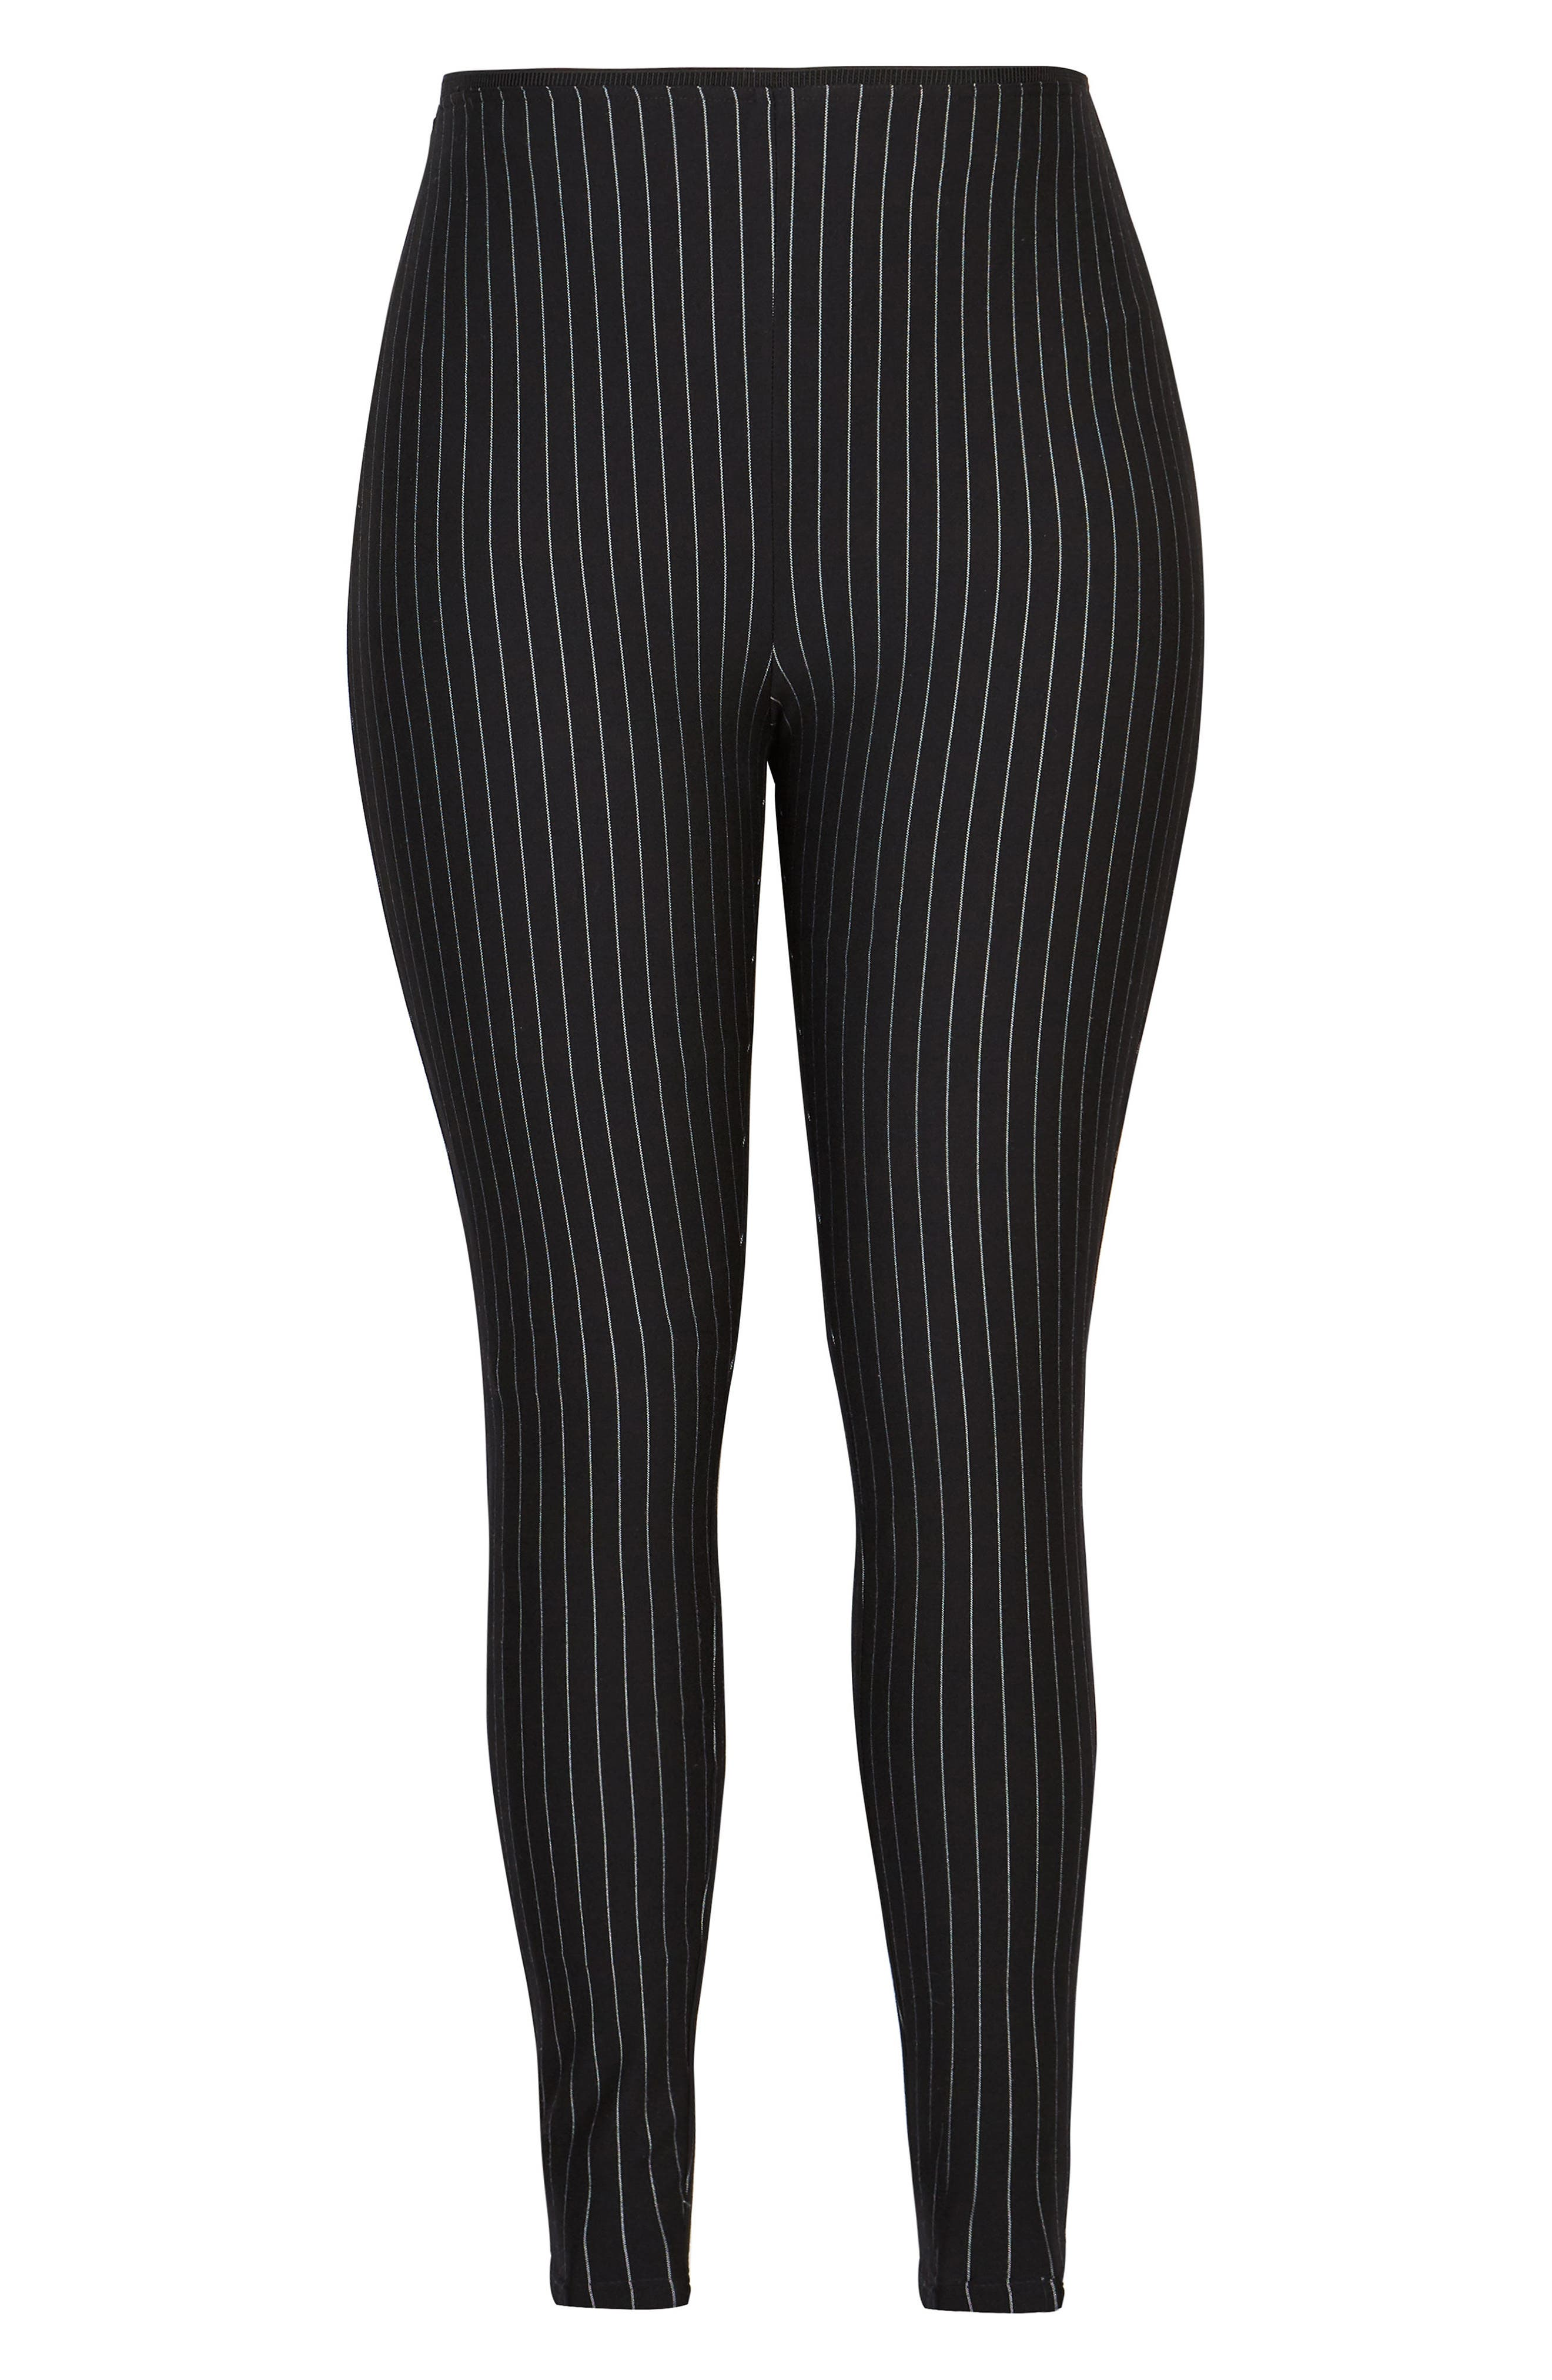 CITY CHIC,                             Chic City Simply Striped Skinny Pants,                             Alternate thumbnail 2, color,                             001